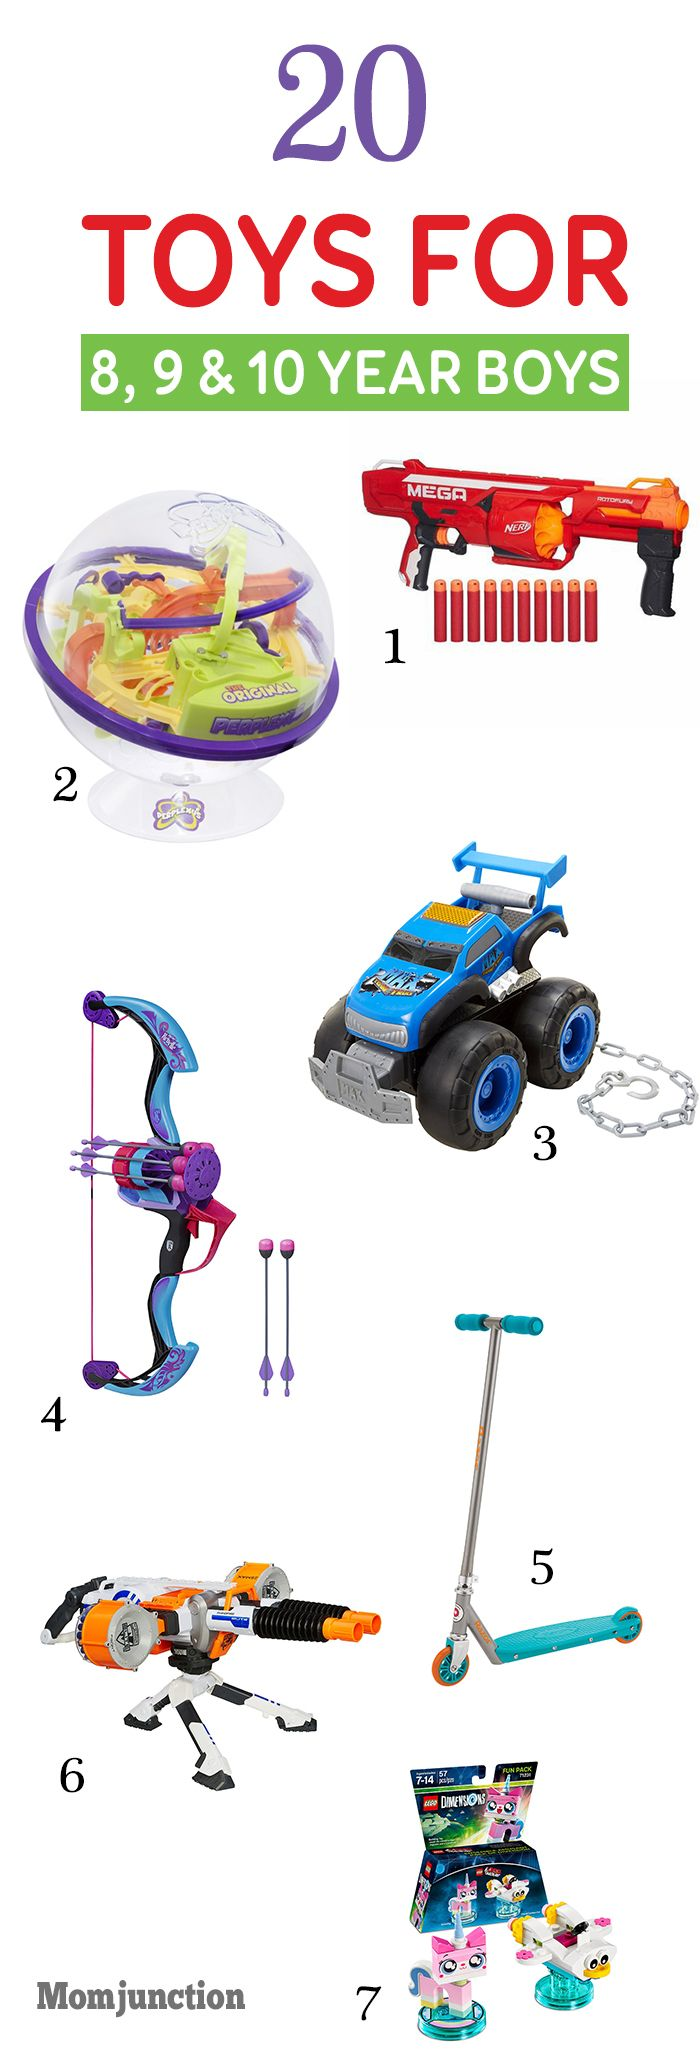 31 Best Toys For 8,9 and 10 Years Old Boys To Buy In 2020